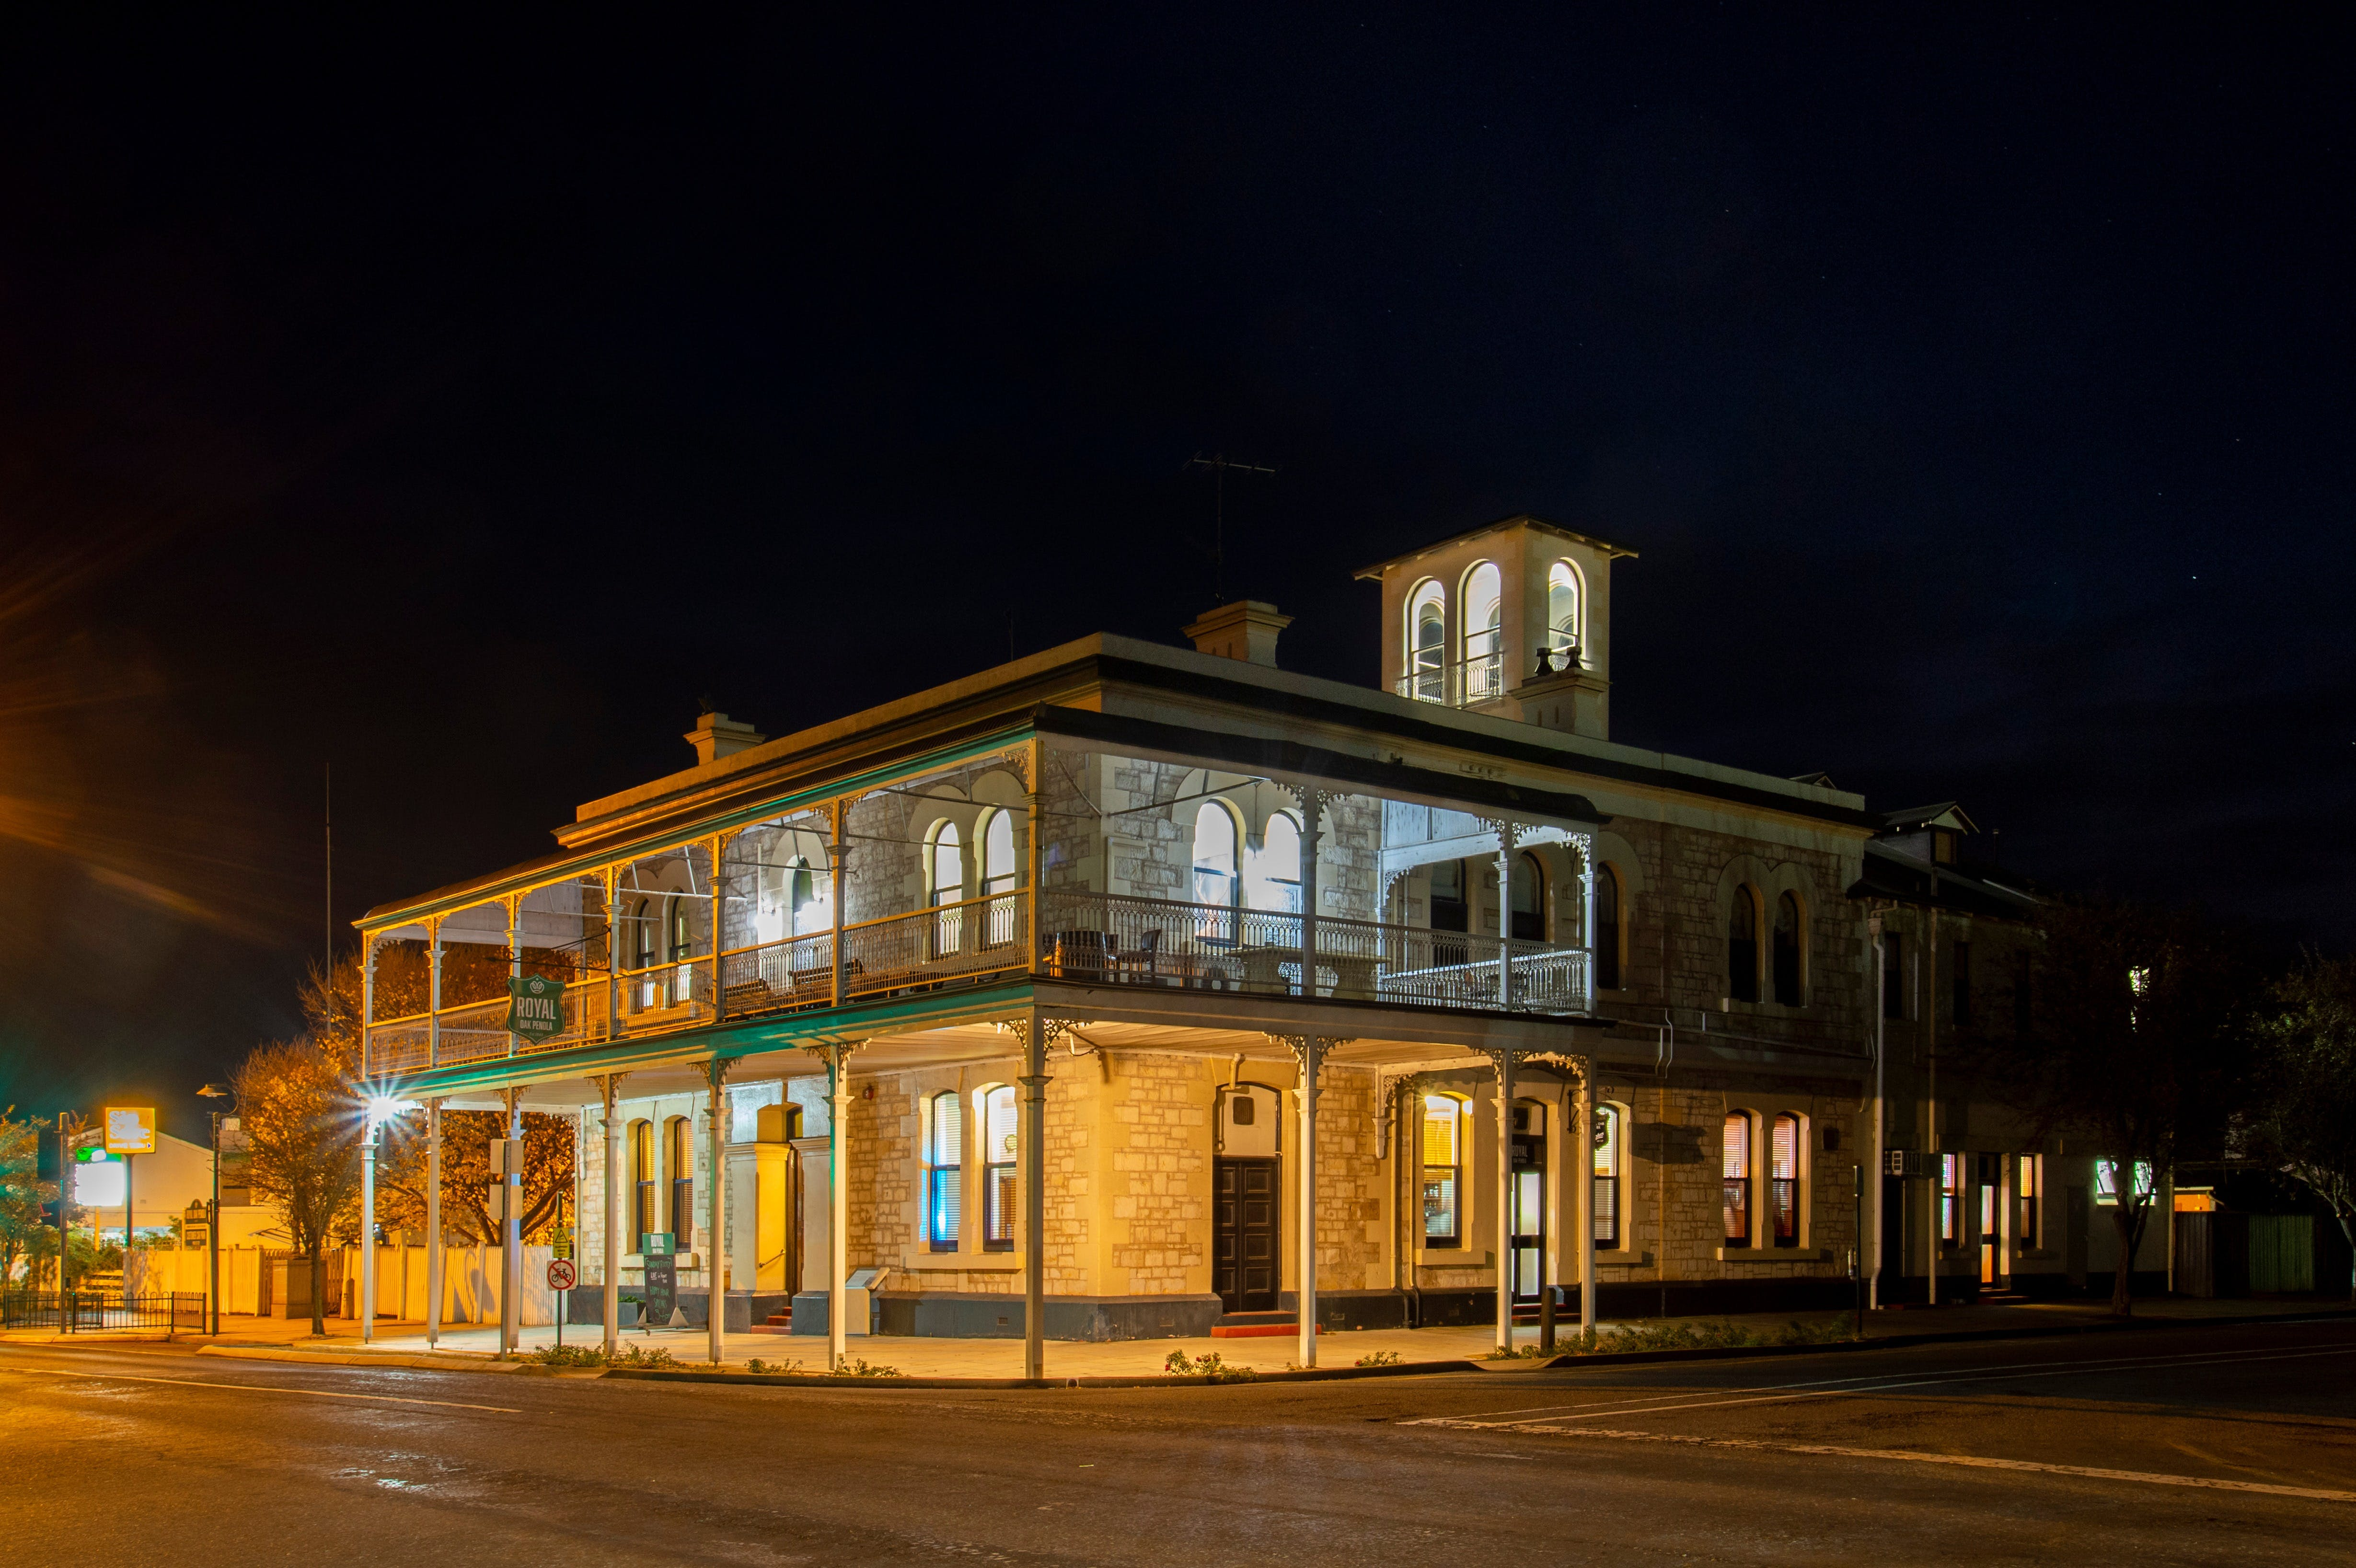 Royal Oak Hotel Penola - Accommodation Adelaide